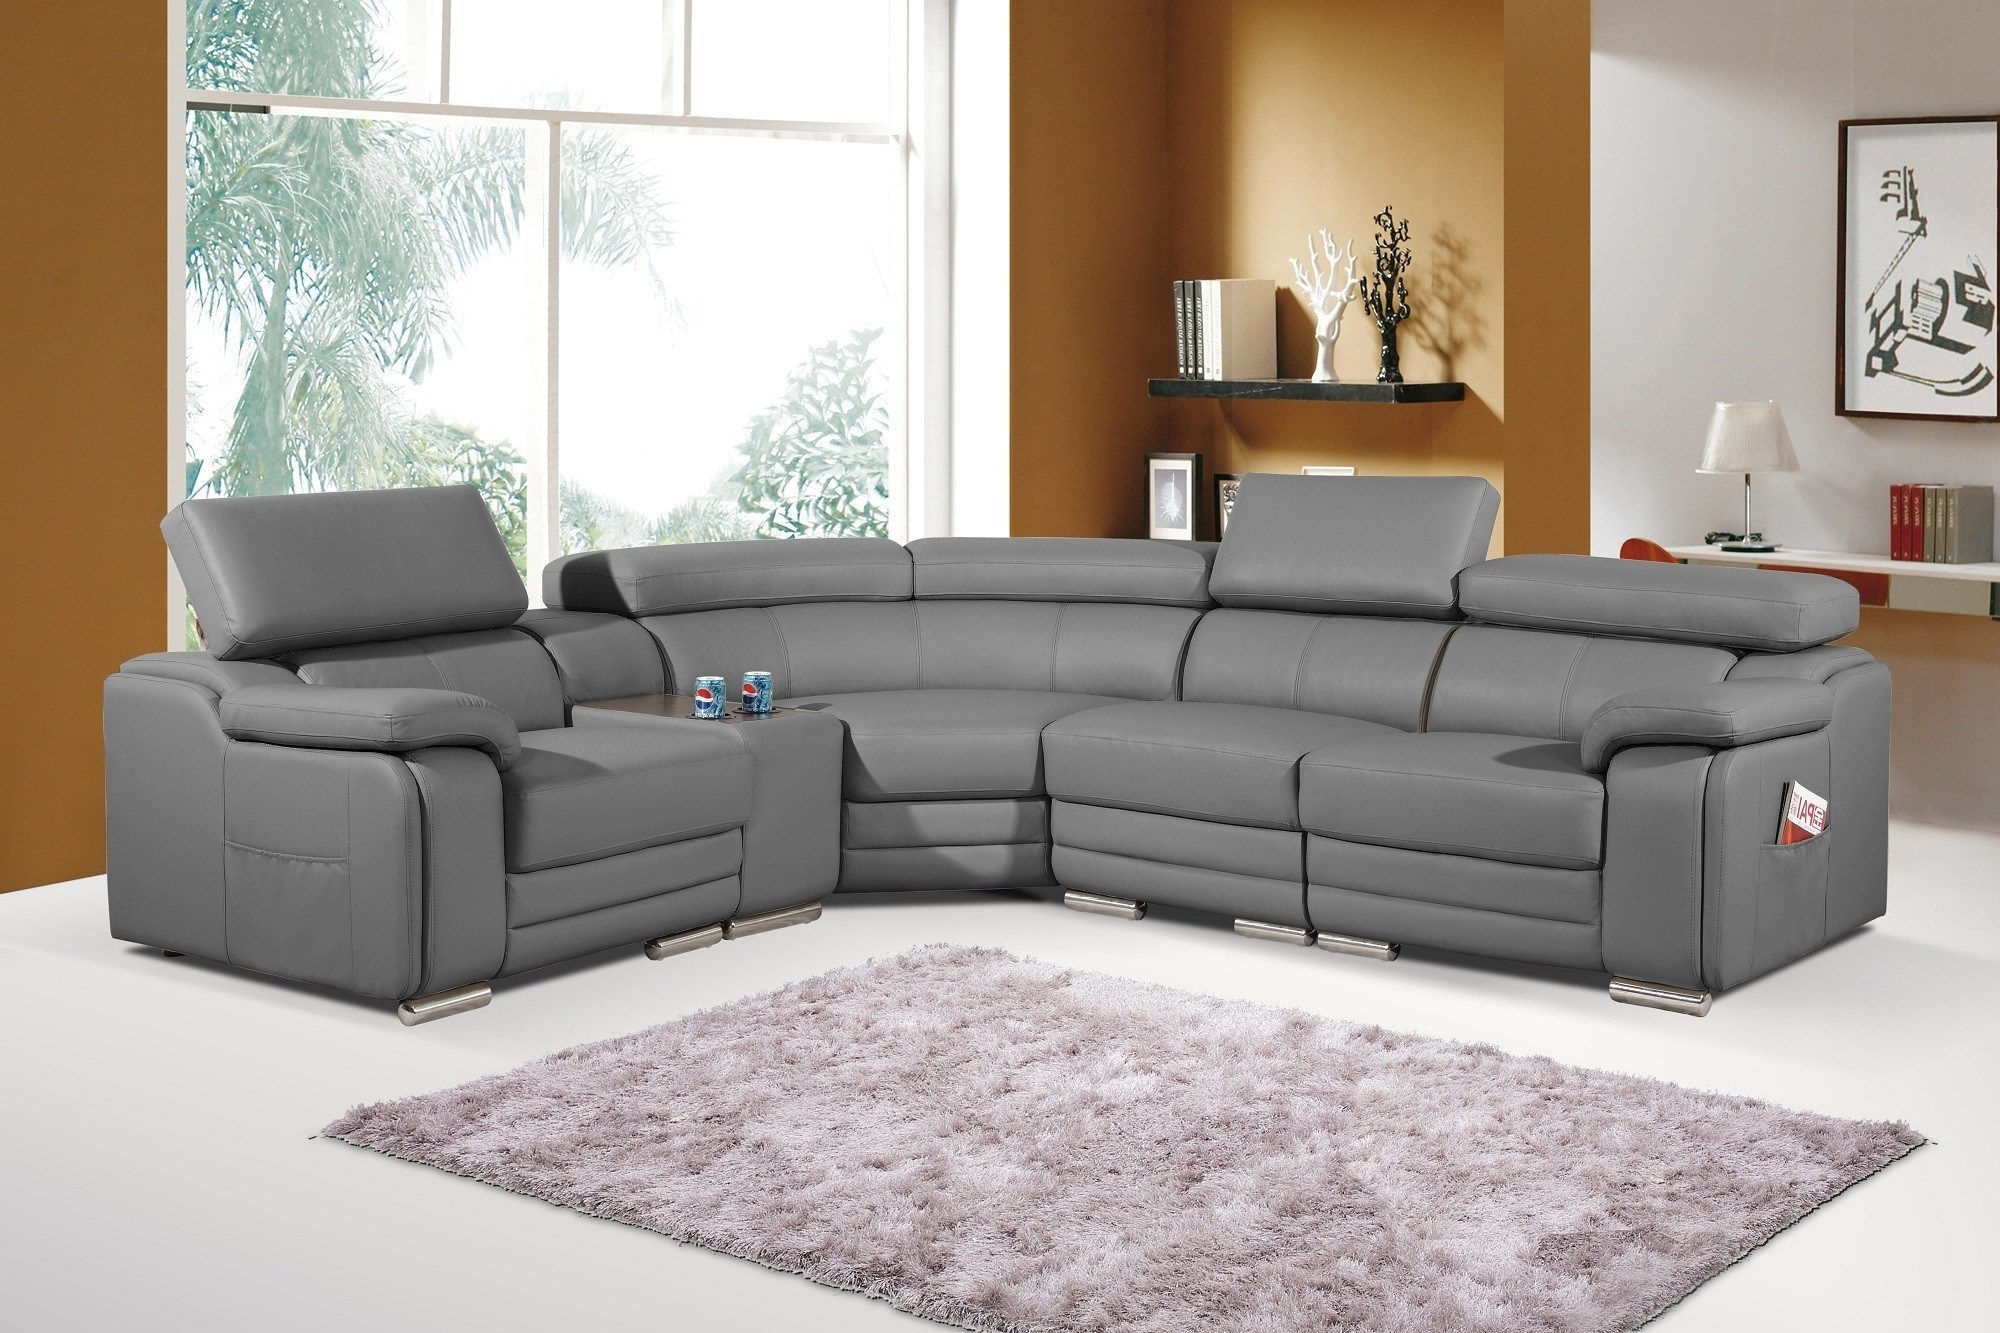 Astounding Target Sectional Sofa 74 In Sectional Sofas At Costco Pertaining To Target Sectional Sofas (View 3 of 10)